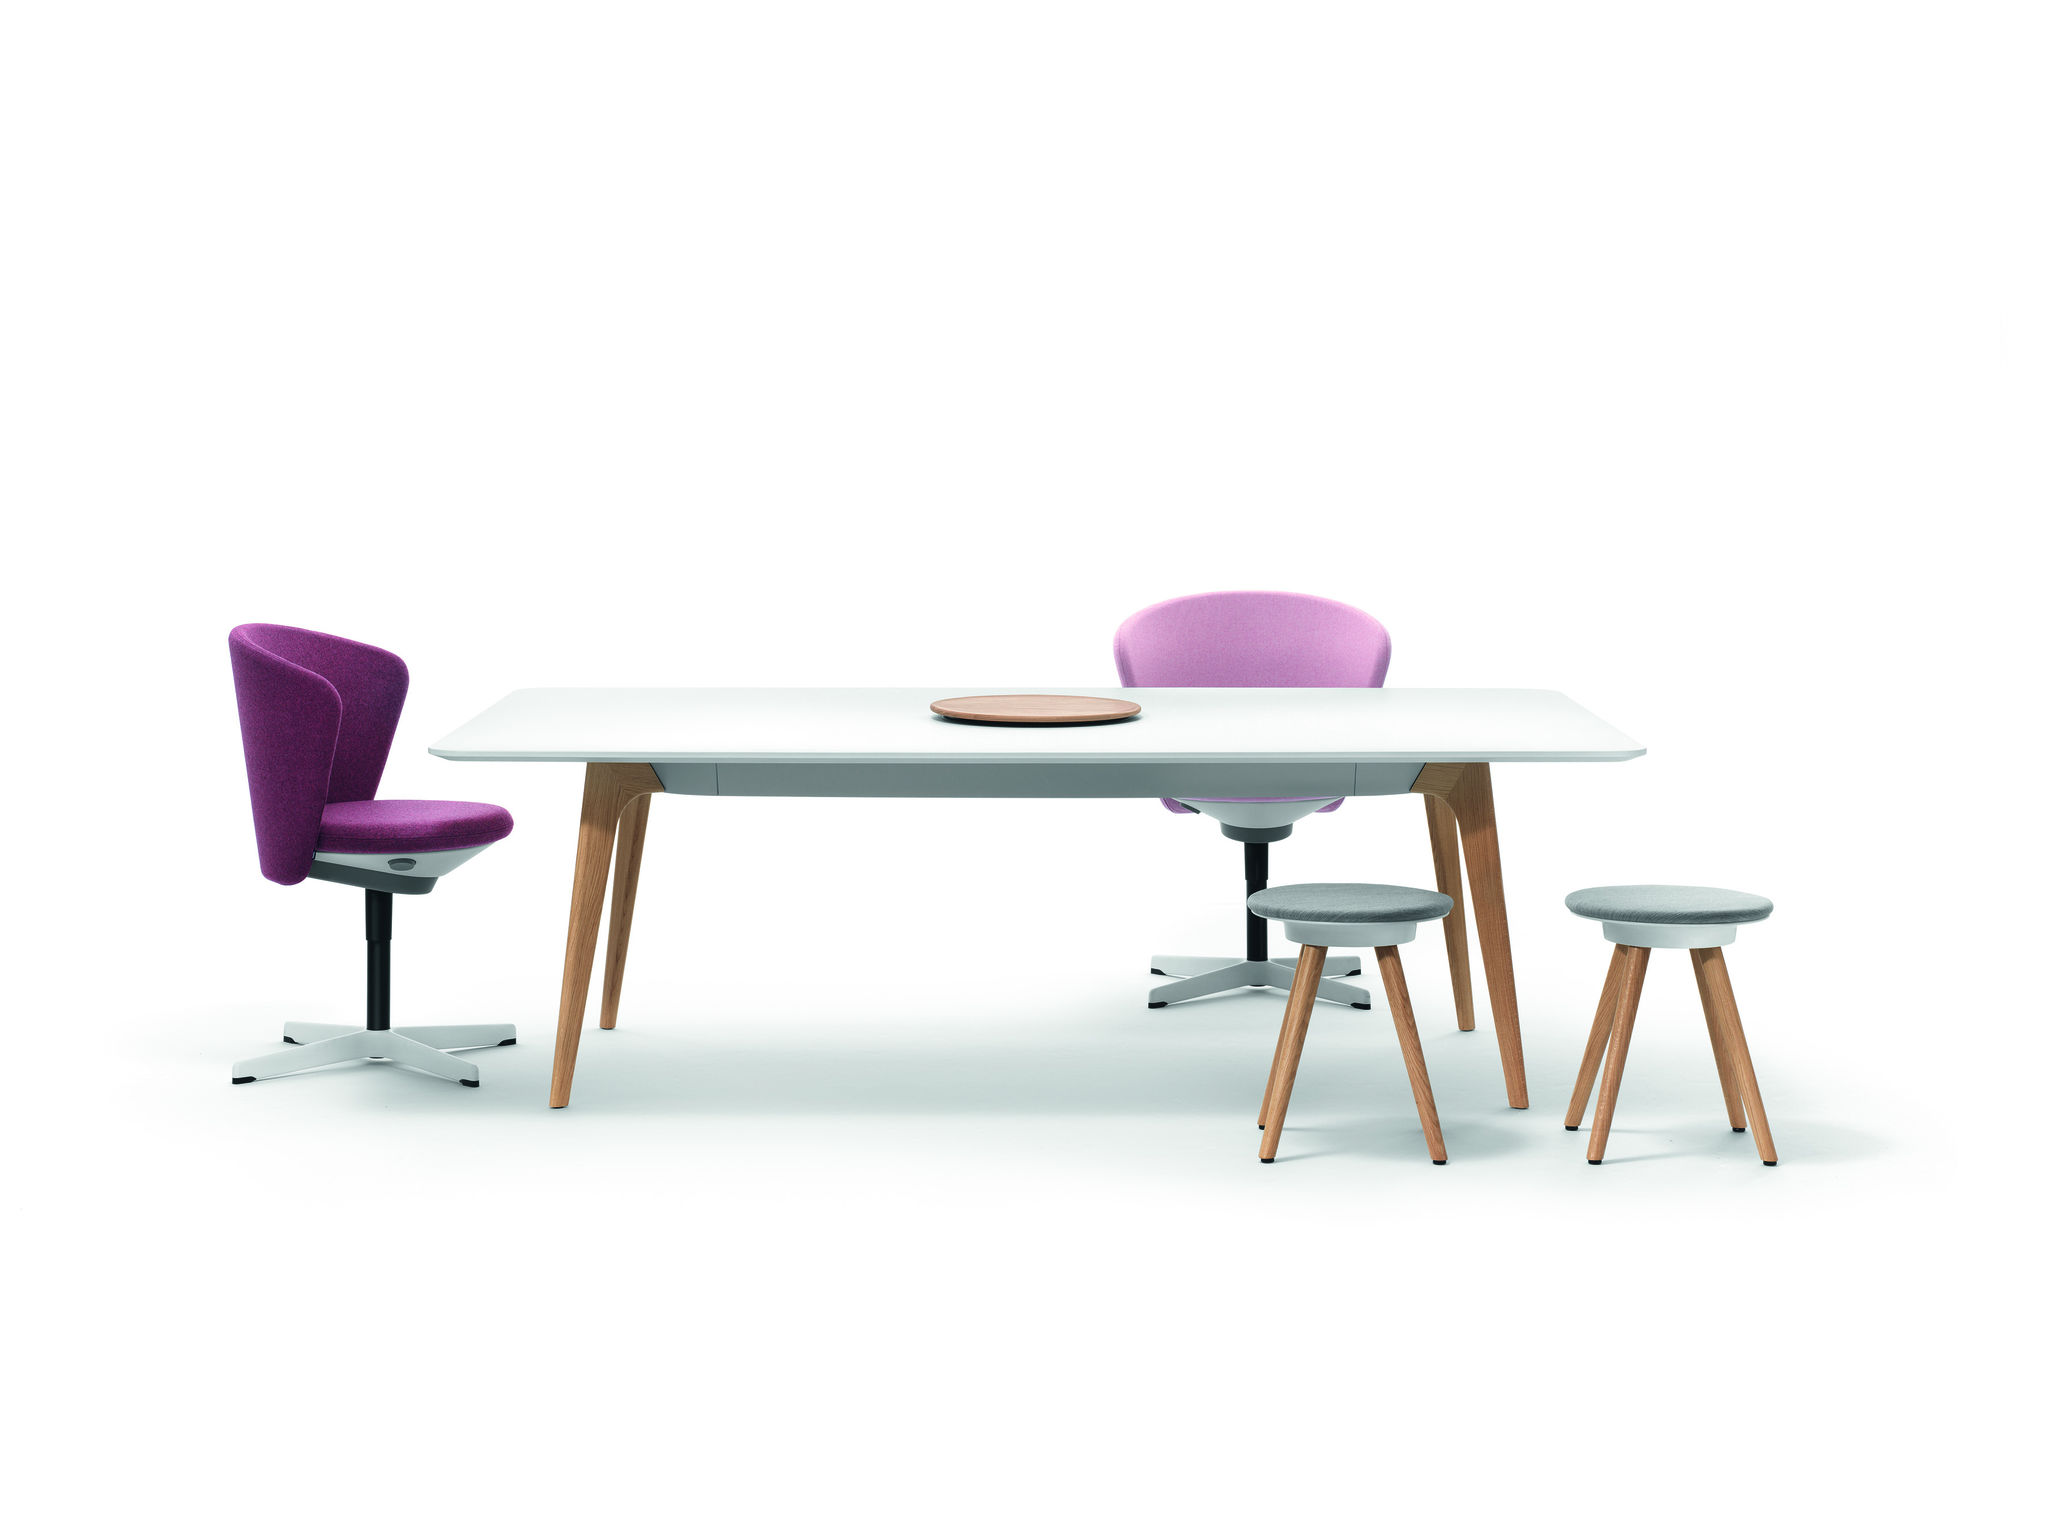 Timba table entry if world design guide for Table design guidelines